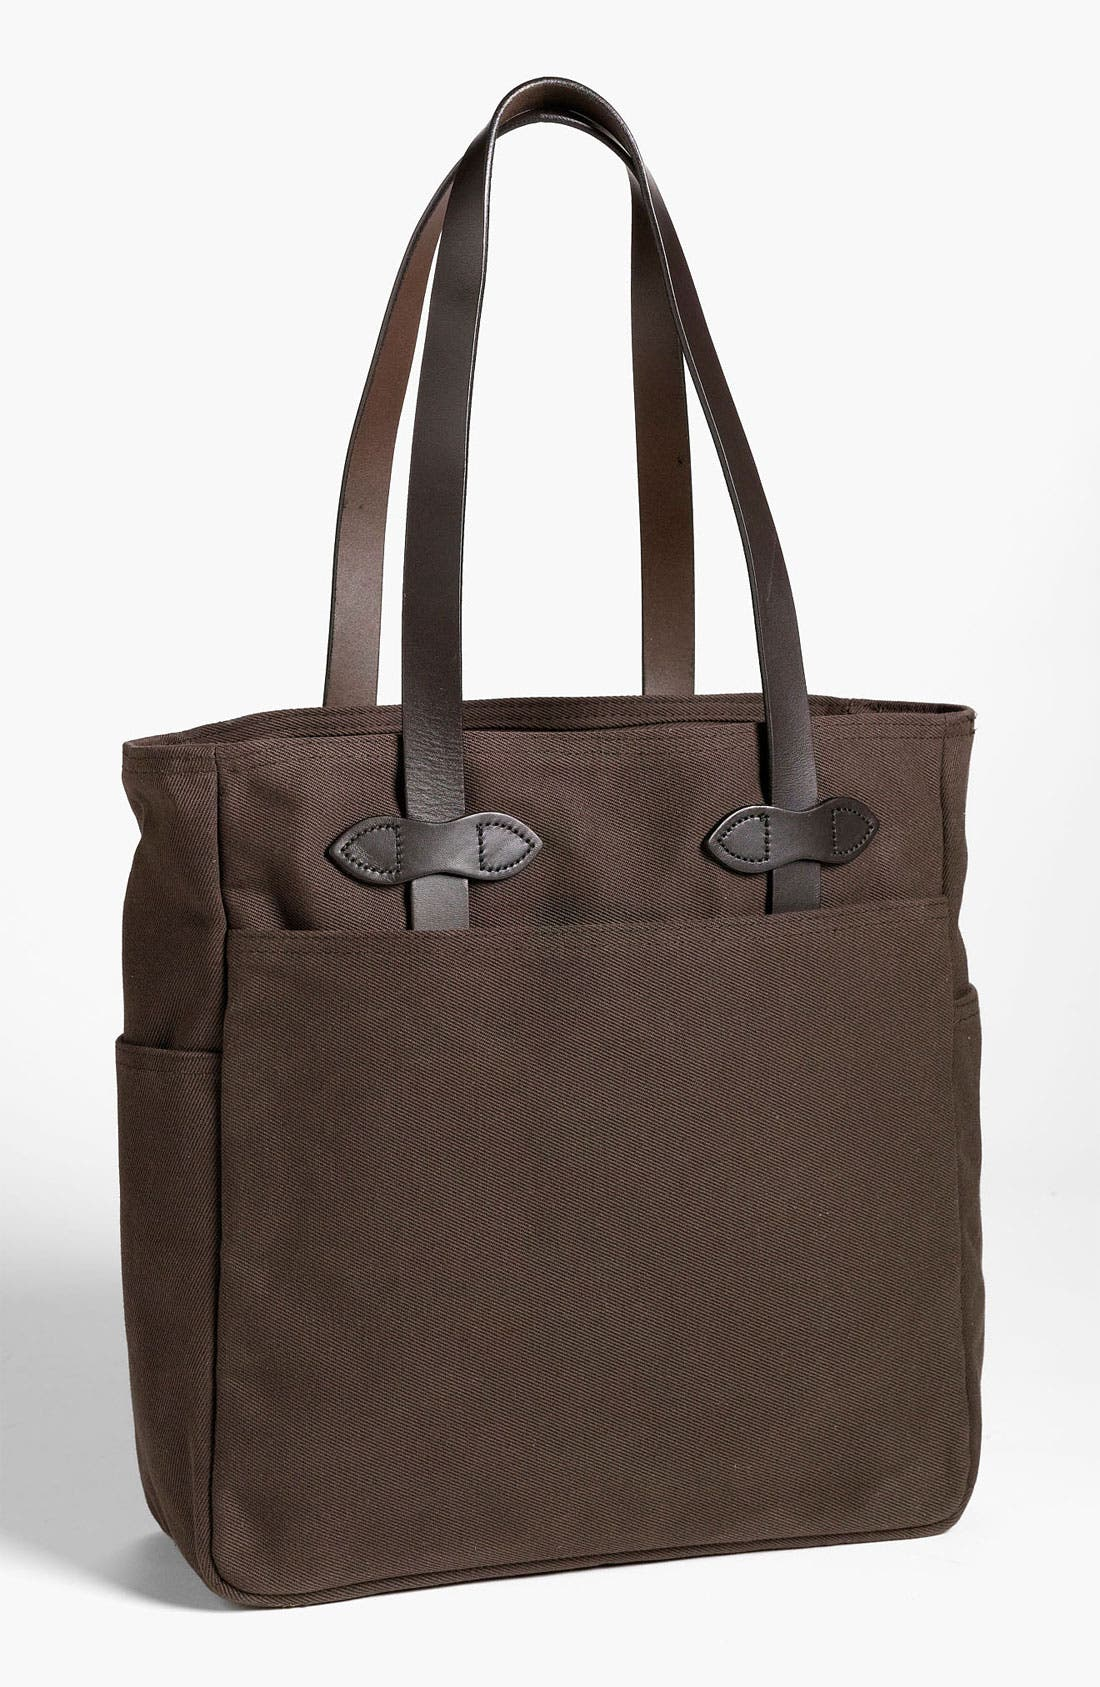 Alternate Image 1 Selected - Filson Tote Bag